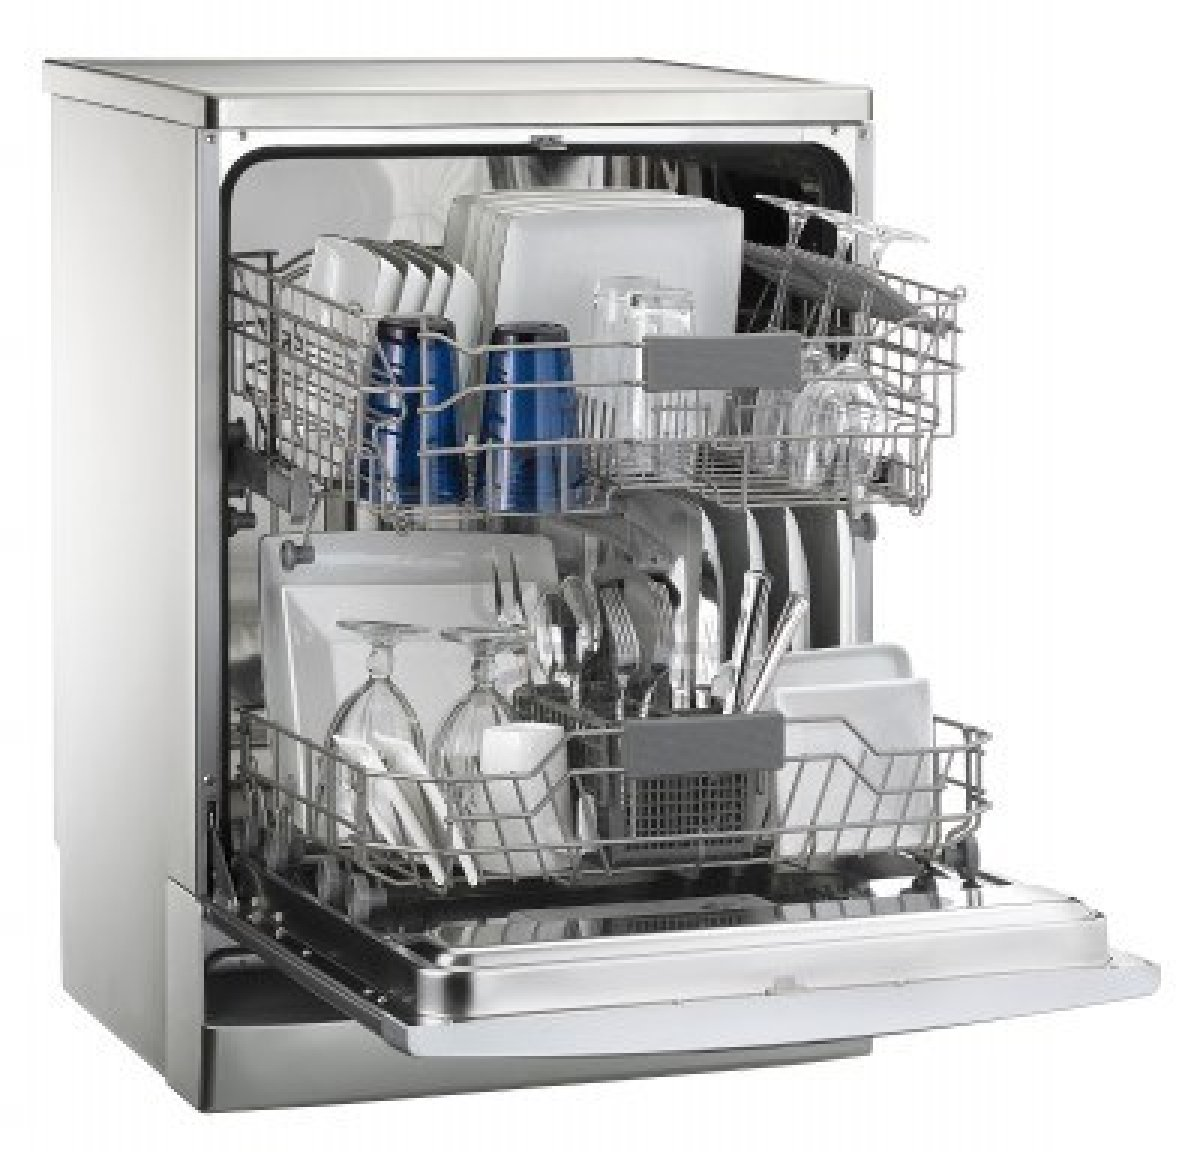 consumer reports best dishwashers of 2014 gephardt daily. Black Bedroom Furniture Sets. Home Design Ideas